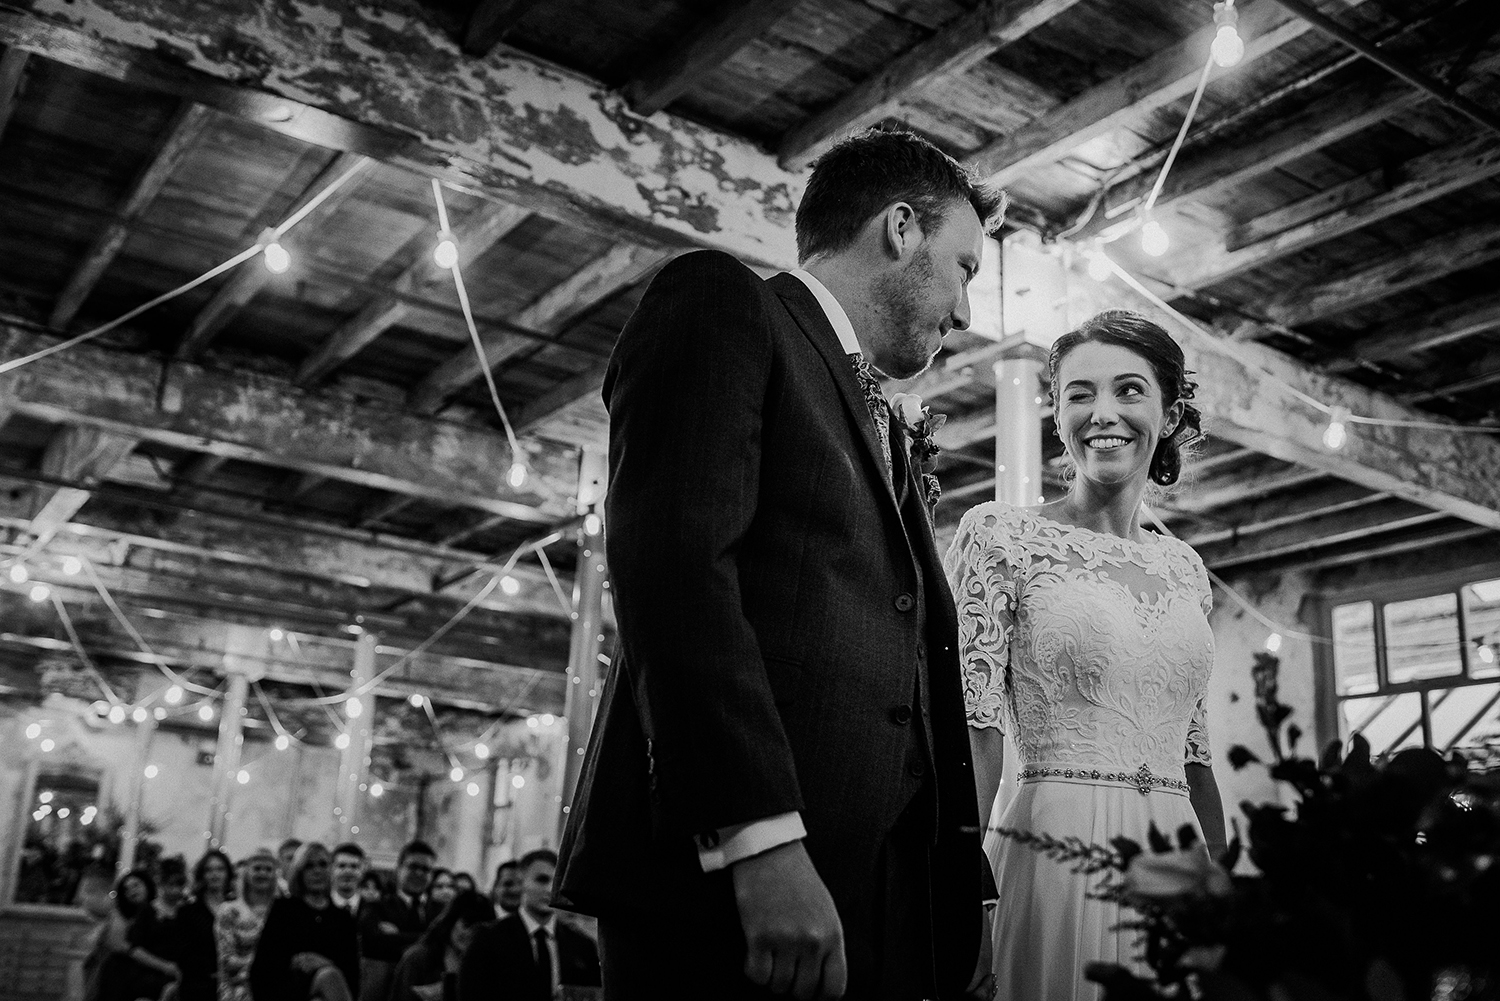 Bw photo. Bride winking at the groom